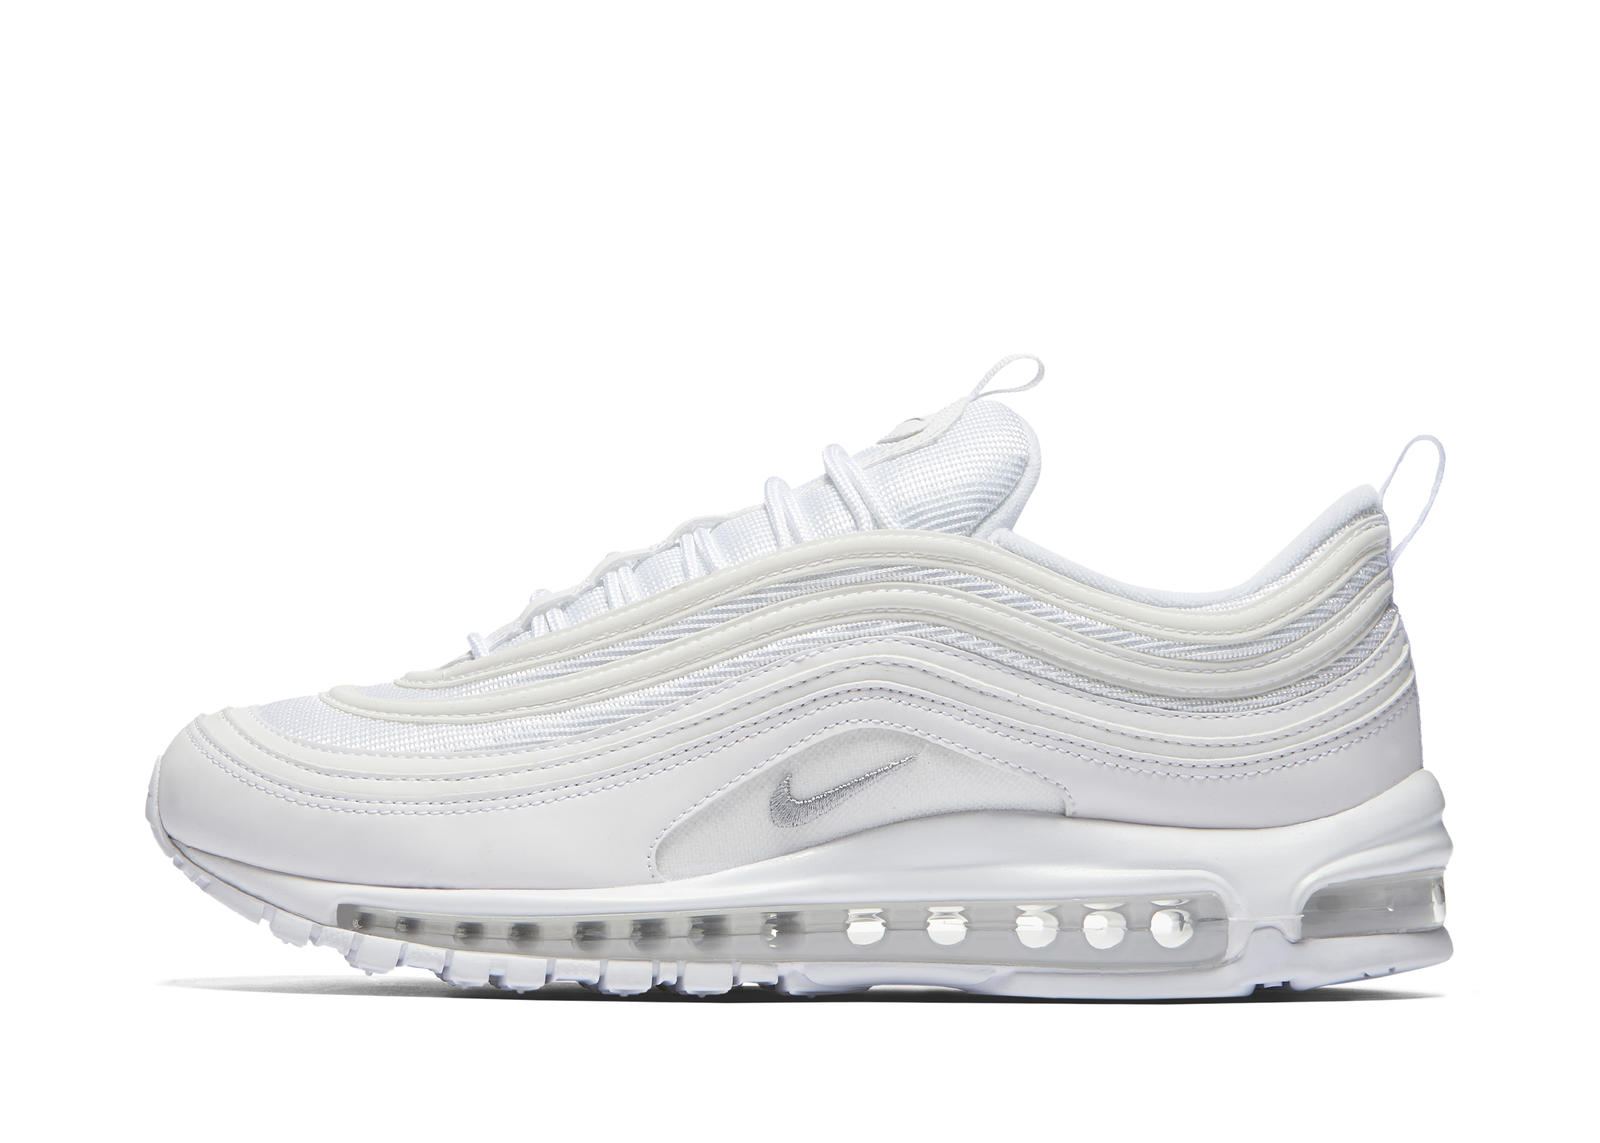 nike air max 97 release guide for fall 10 colorways to. Black Bedroom Furniture Sets. Home Design Ideas